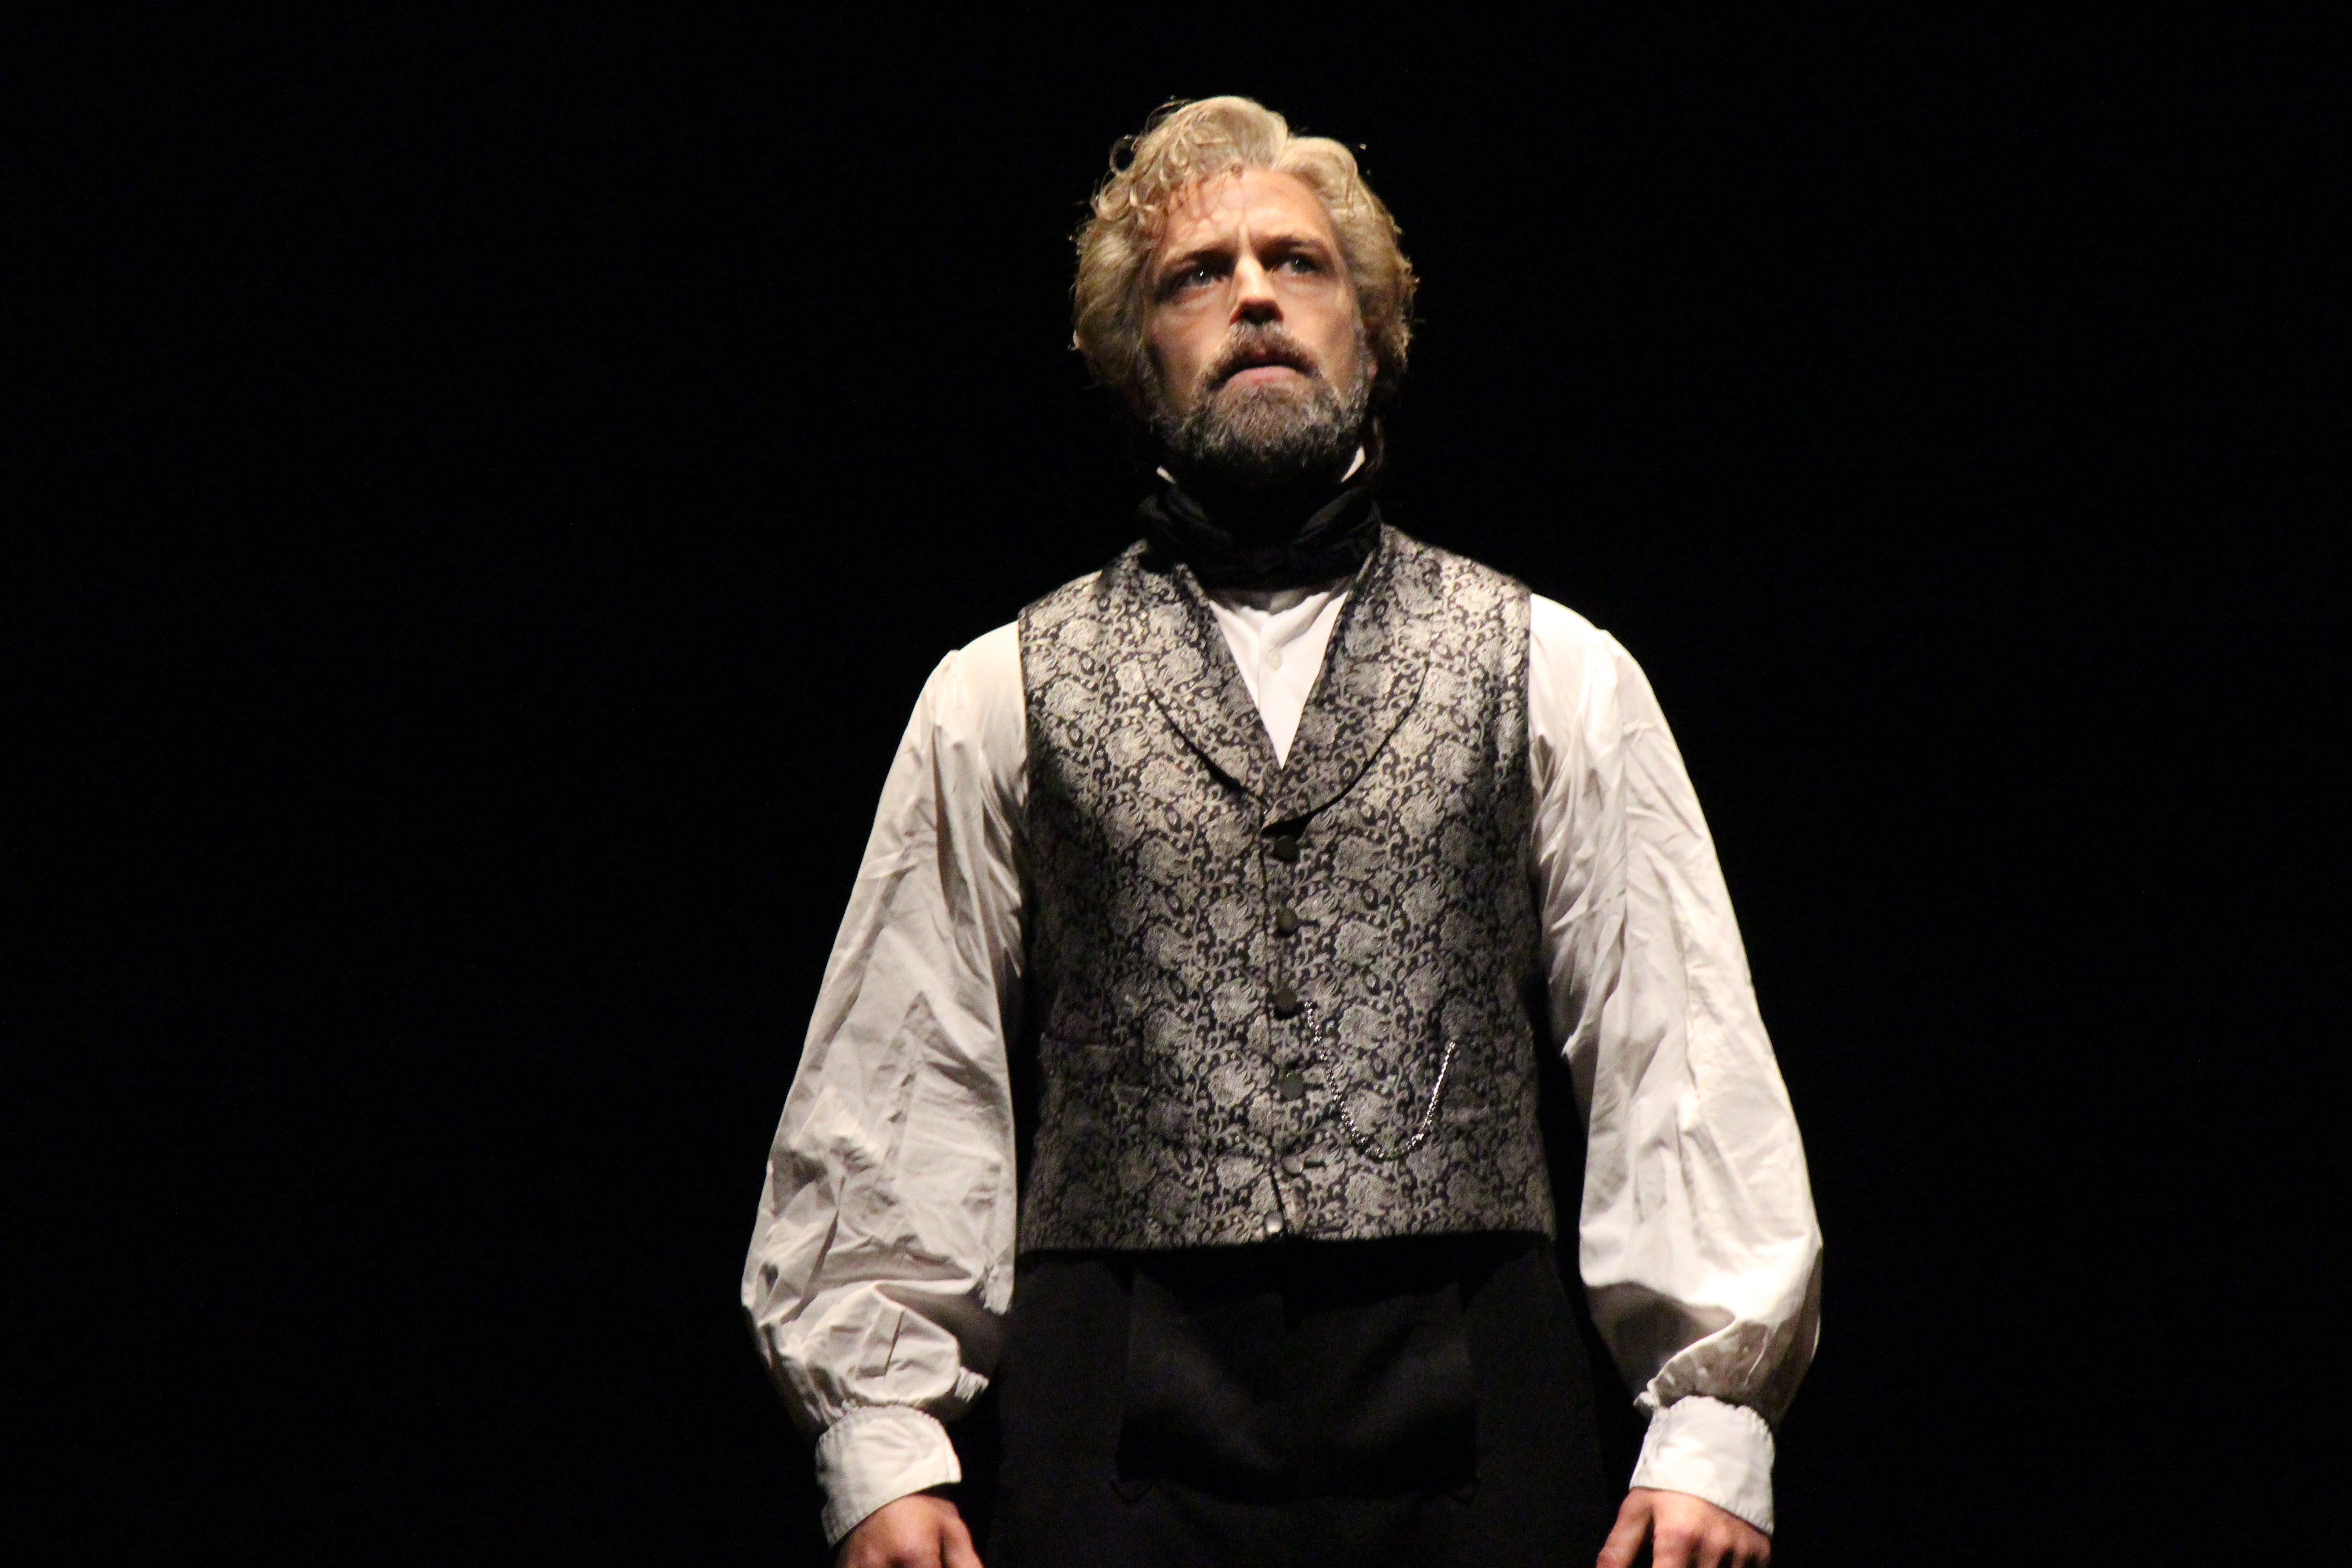 jean valjean and ethical theories Les miserables ethical theories reflected upon the main characters from the film adaptation les miserables by victor hugo non-consequentialist theories of morality are best expressed by the character inspector javert.